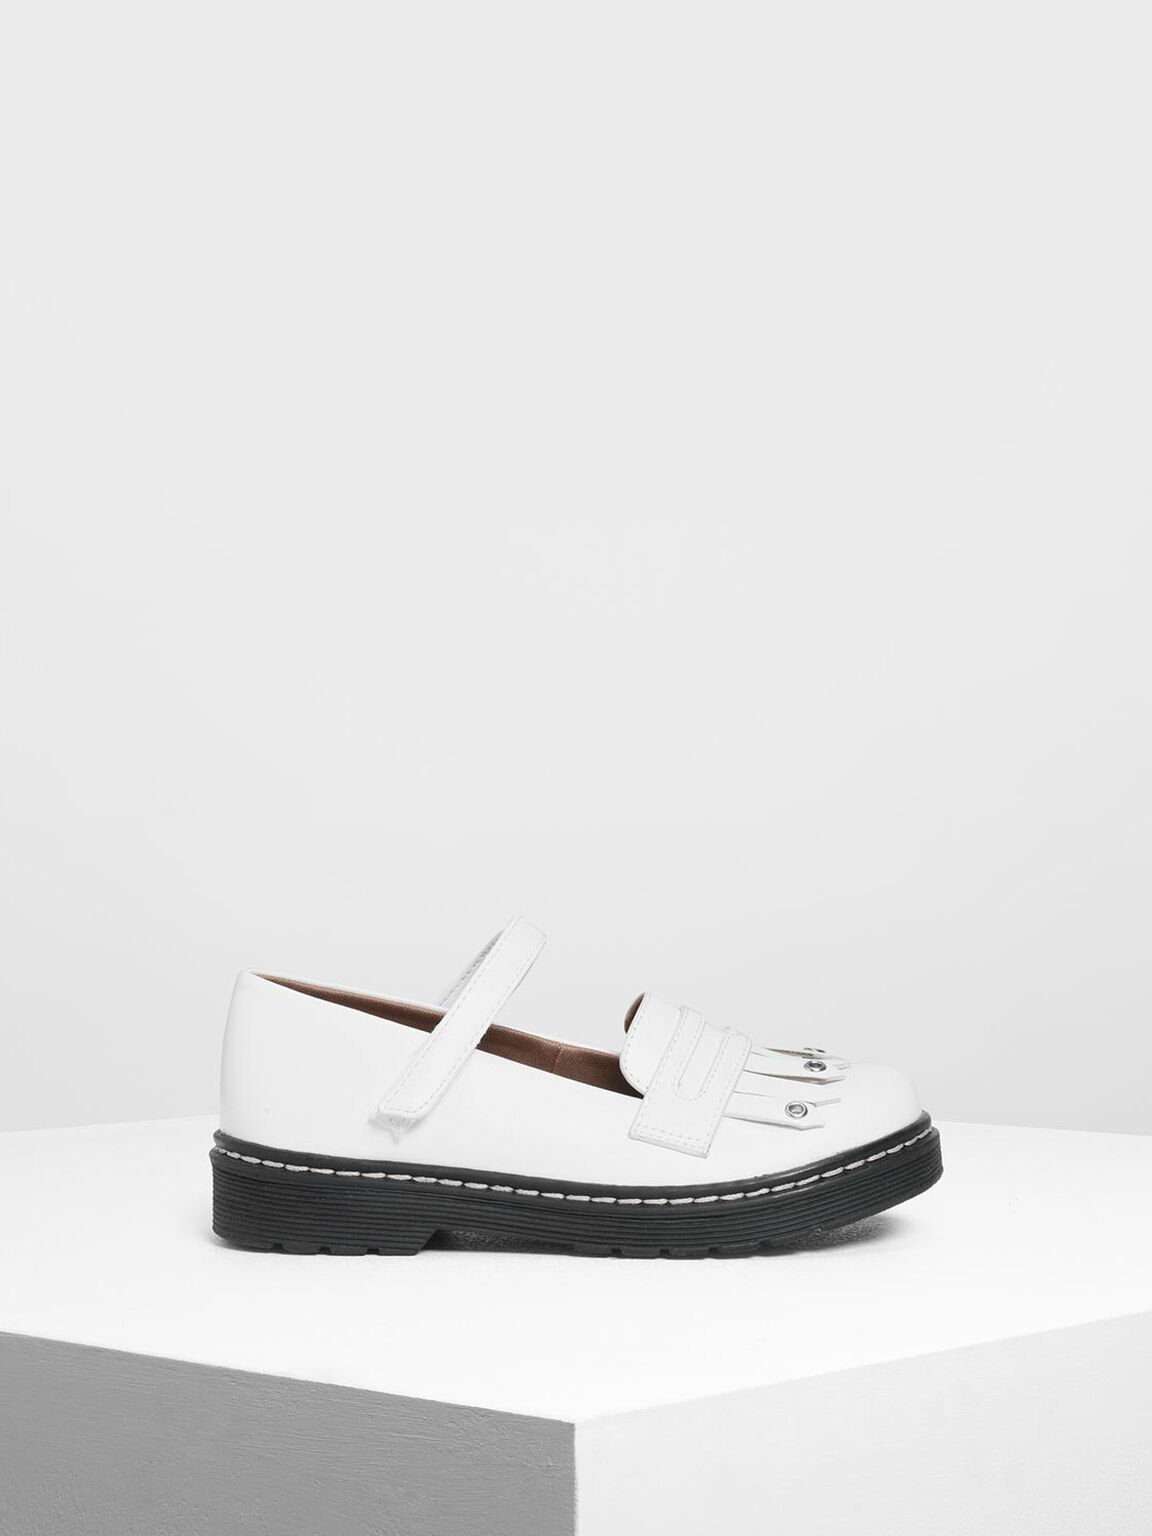 Kids' Fringe Loafers, White, hi-res